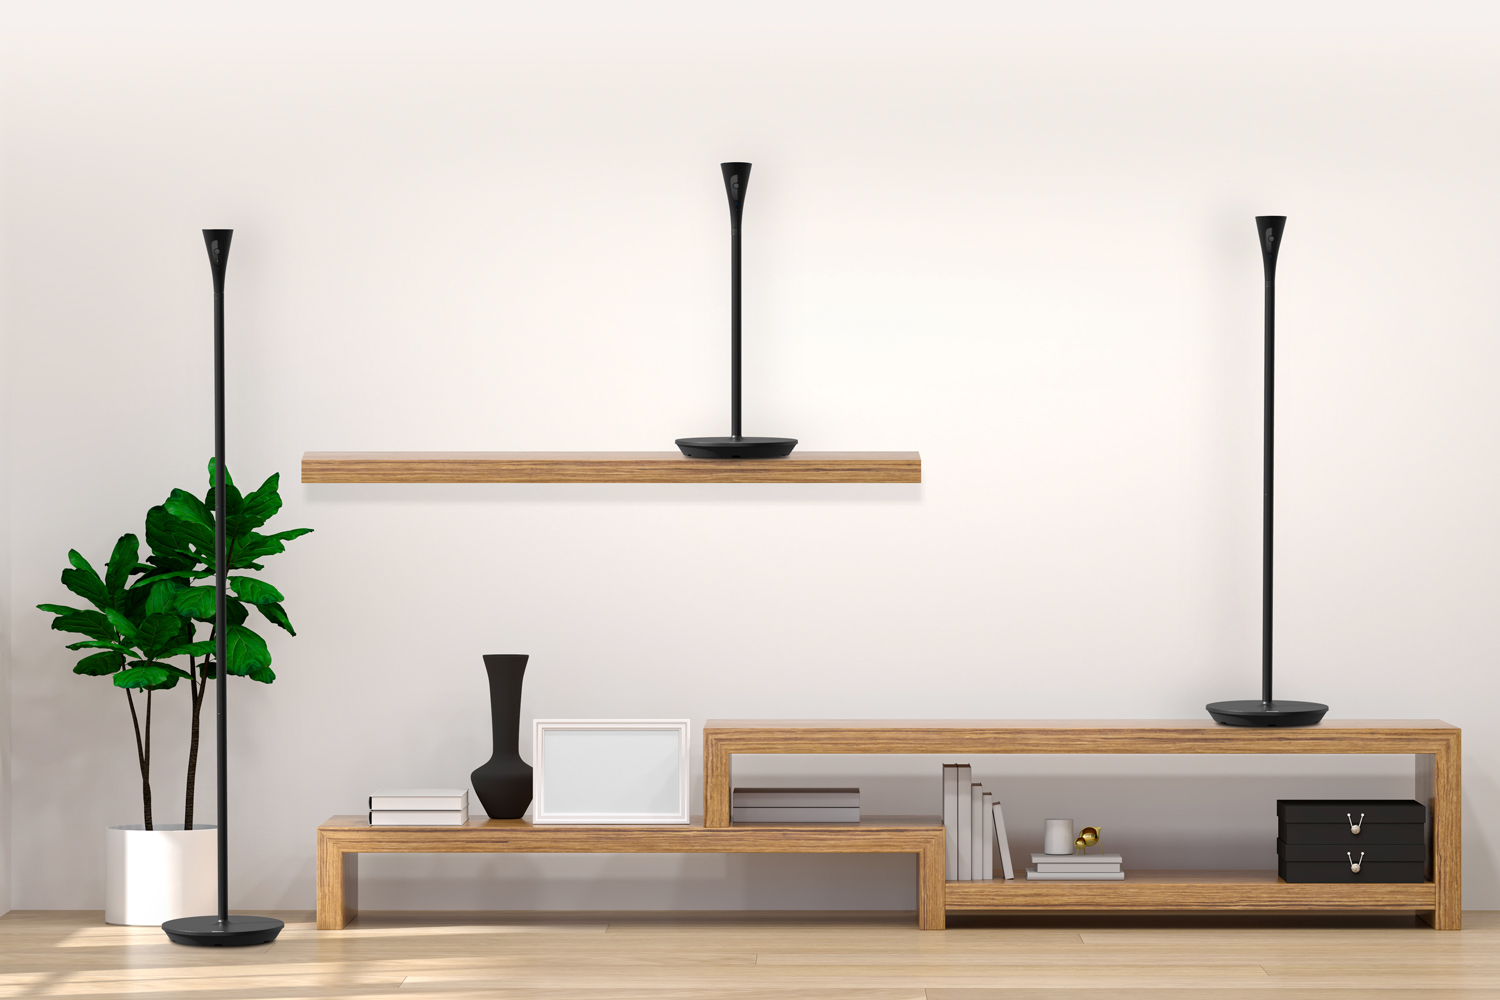 Why the Panasonic HomeHawk Floor Lamp Should Be Your Next Home Security Gadget